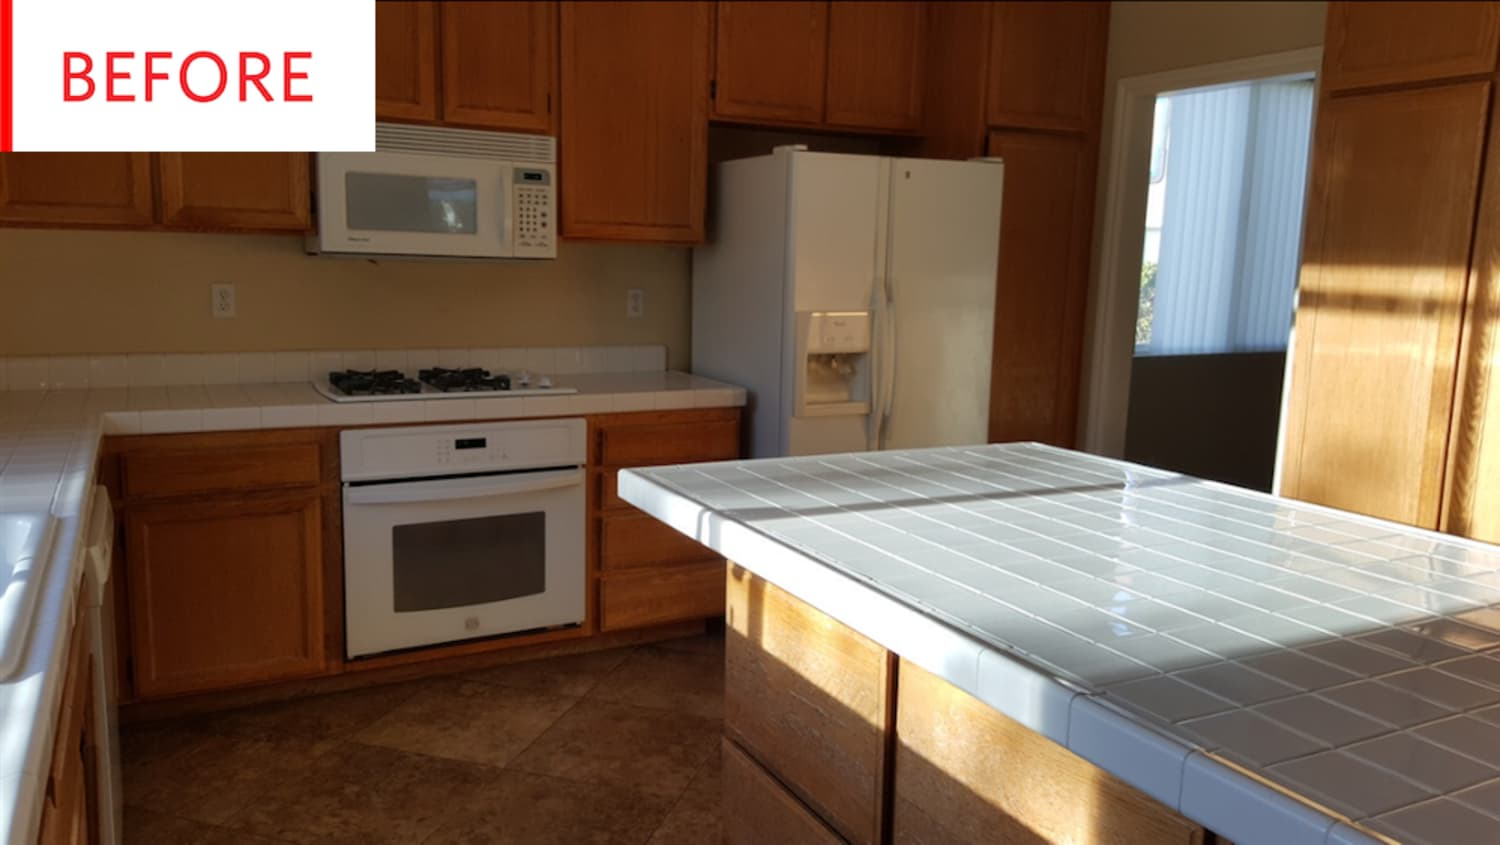 Before and After: An Interior Design Student Upgraded Her Family's Kitchen from Builder Grade to Beautiful